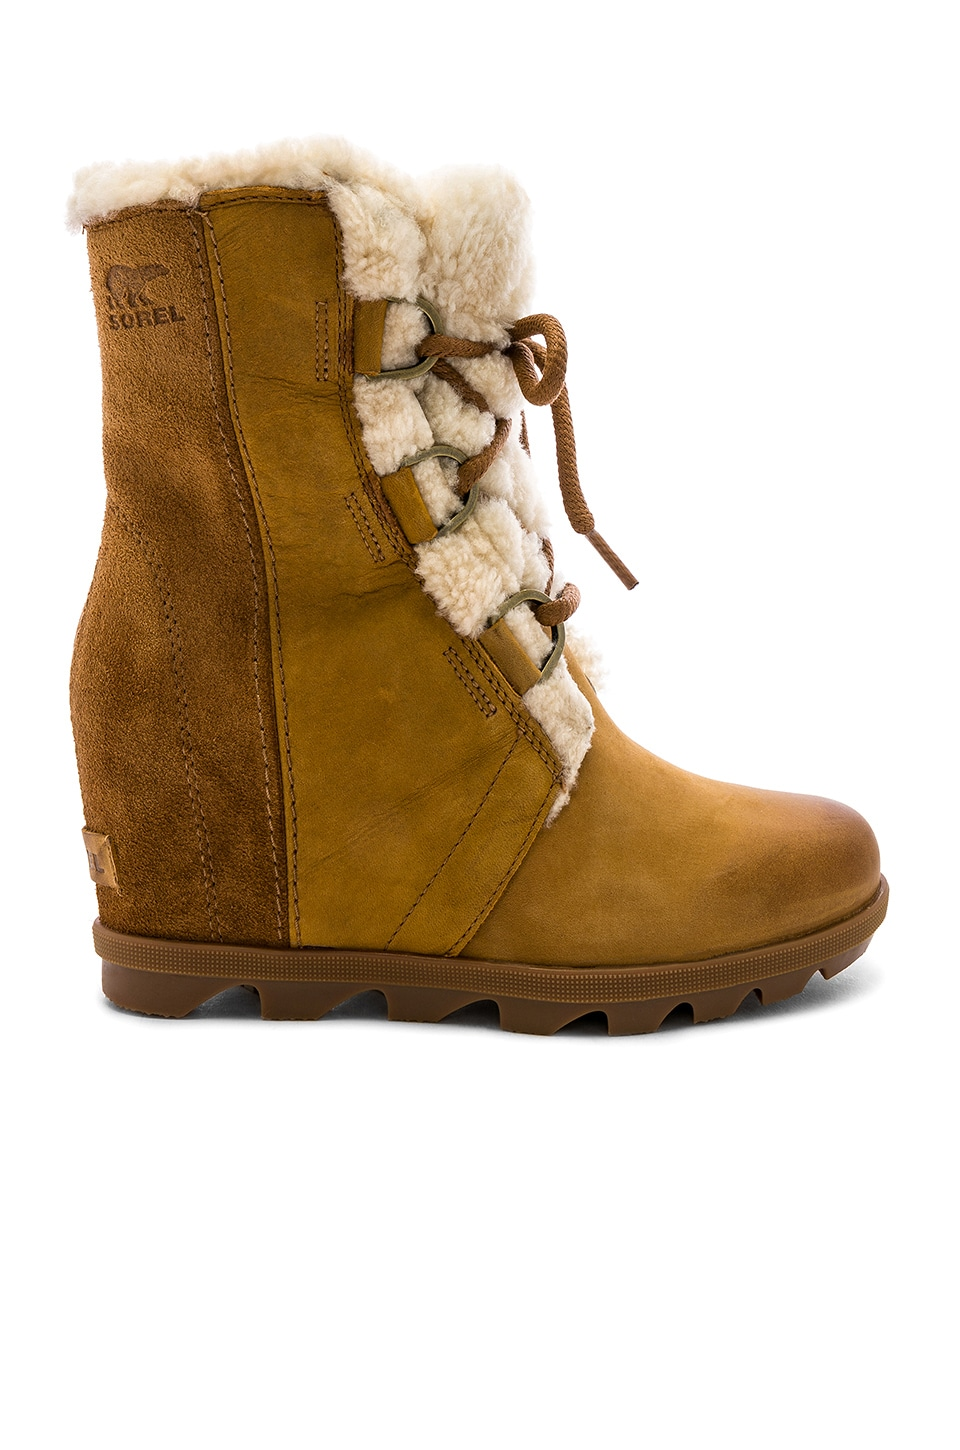 Sorel Joan of Arctic Wedge in Camel Brown